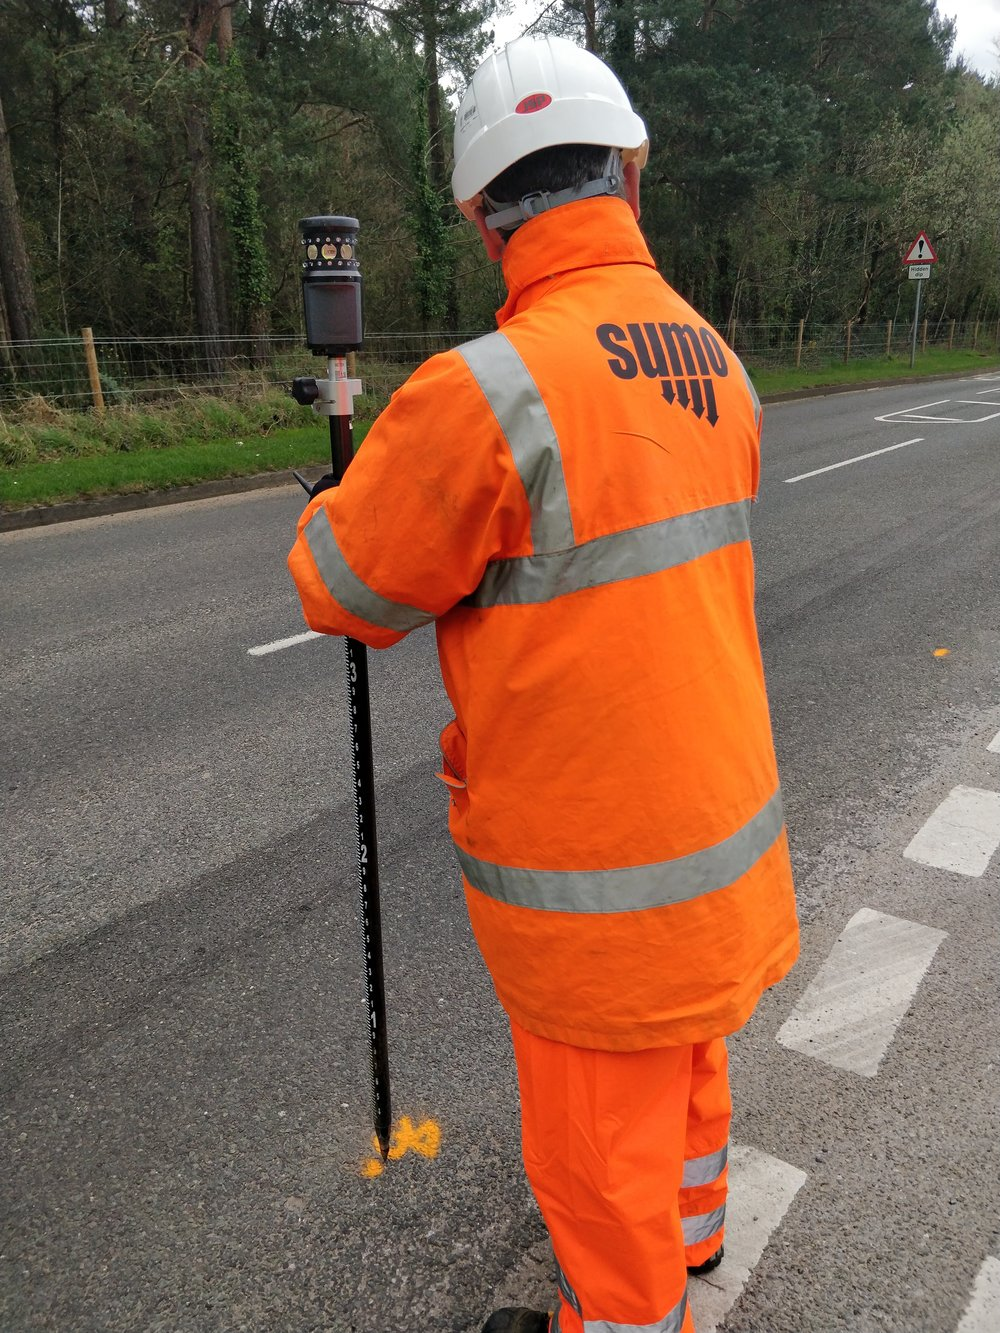 Topographic survey work can be intergrated easily into the SUMO Survey